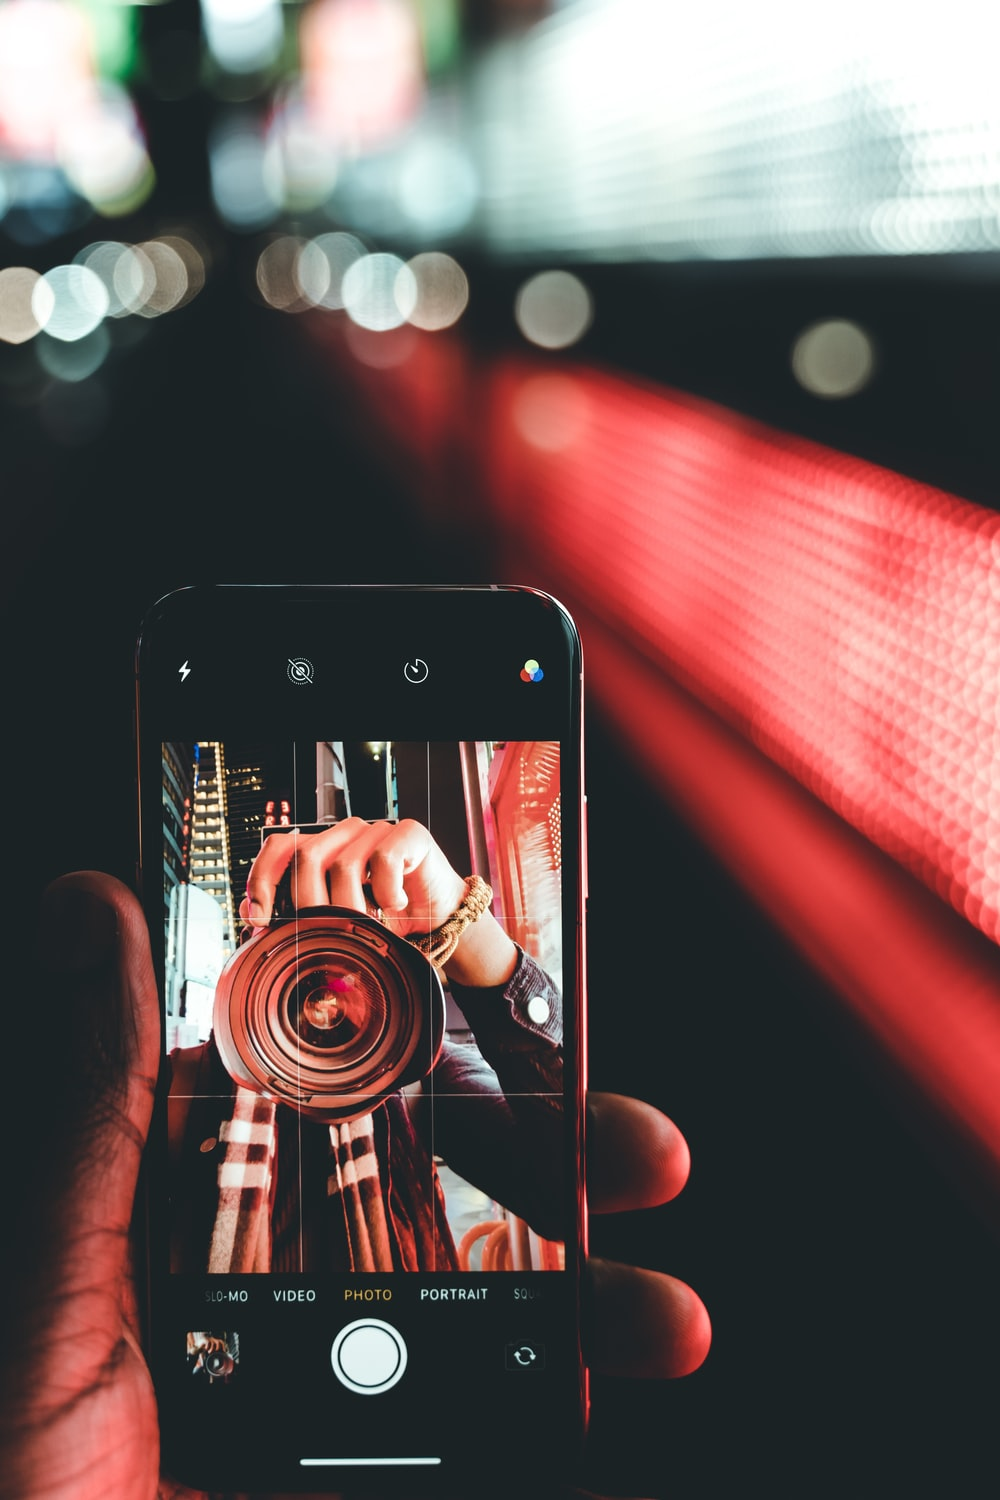 smartphone showing person holding DSLR camera